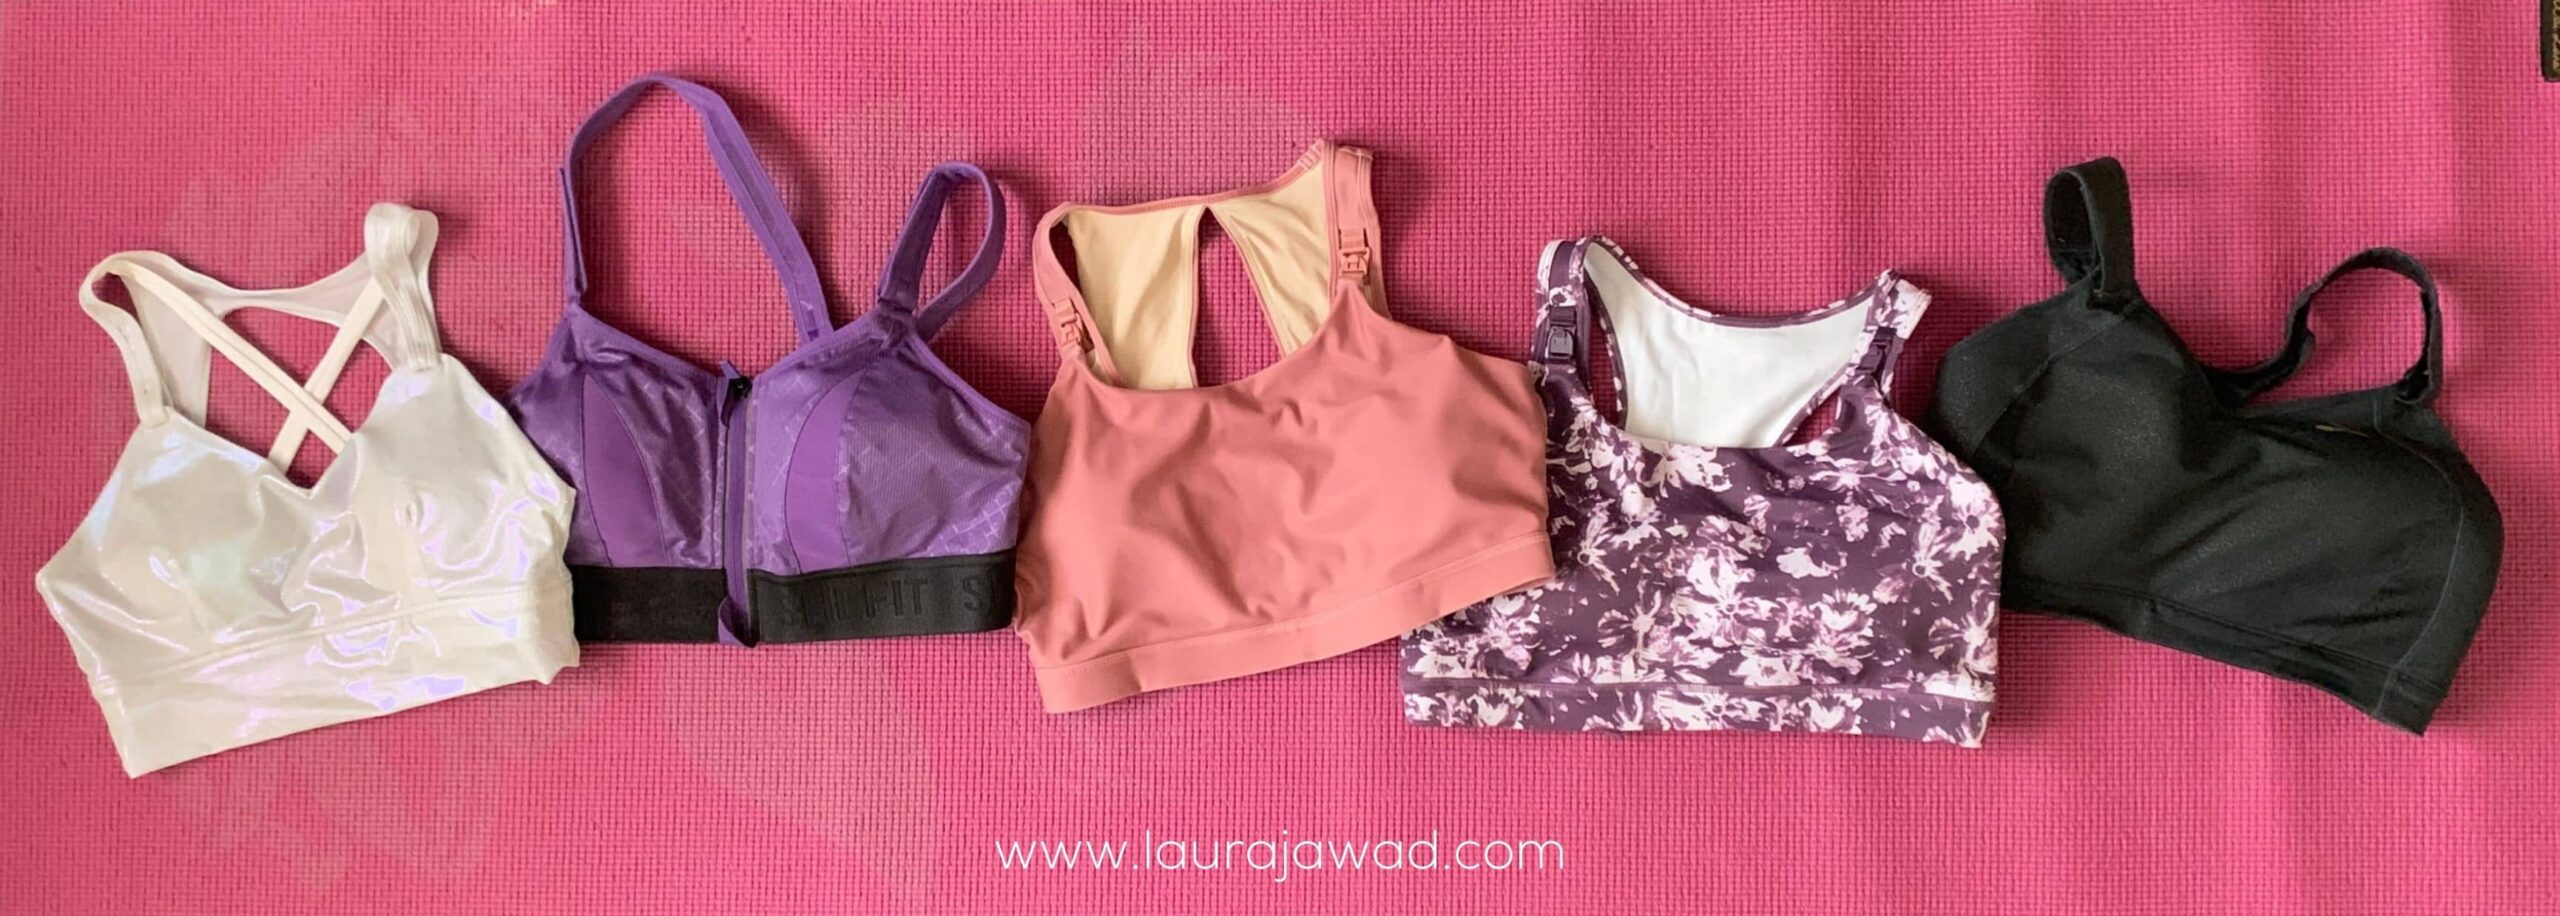 Five popular nursing sports bras that claim to offer support for larger breasts.